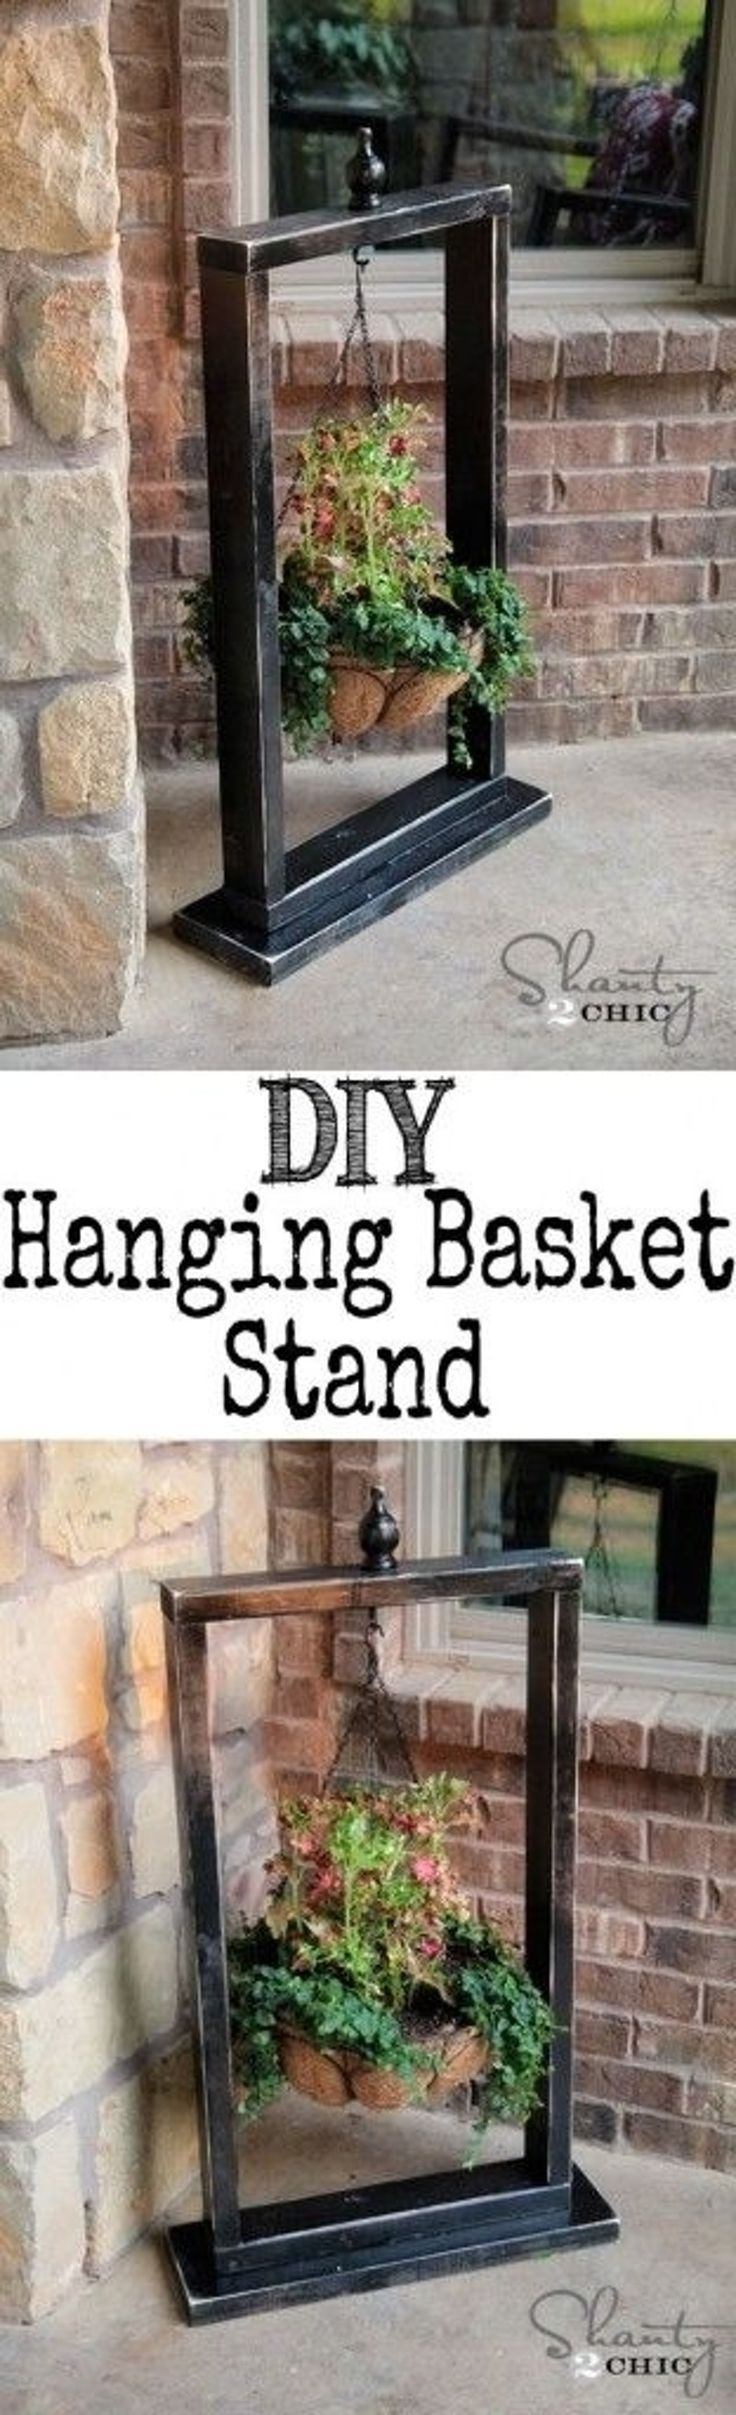 16. DIY #Hanging Basket #Stand - 31 Ways to Use Old Windows and #Frames ... → DIY #Chalkboard